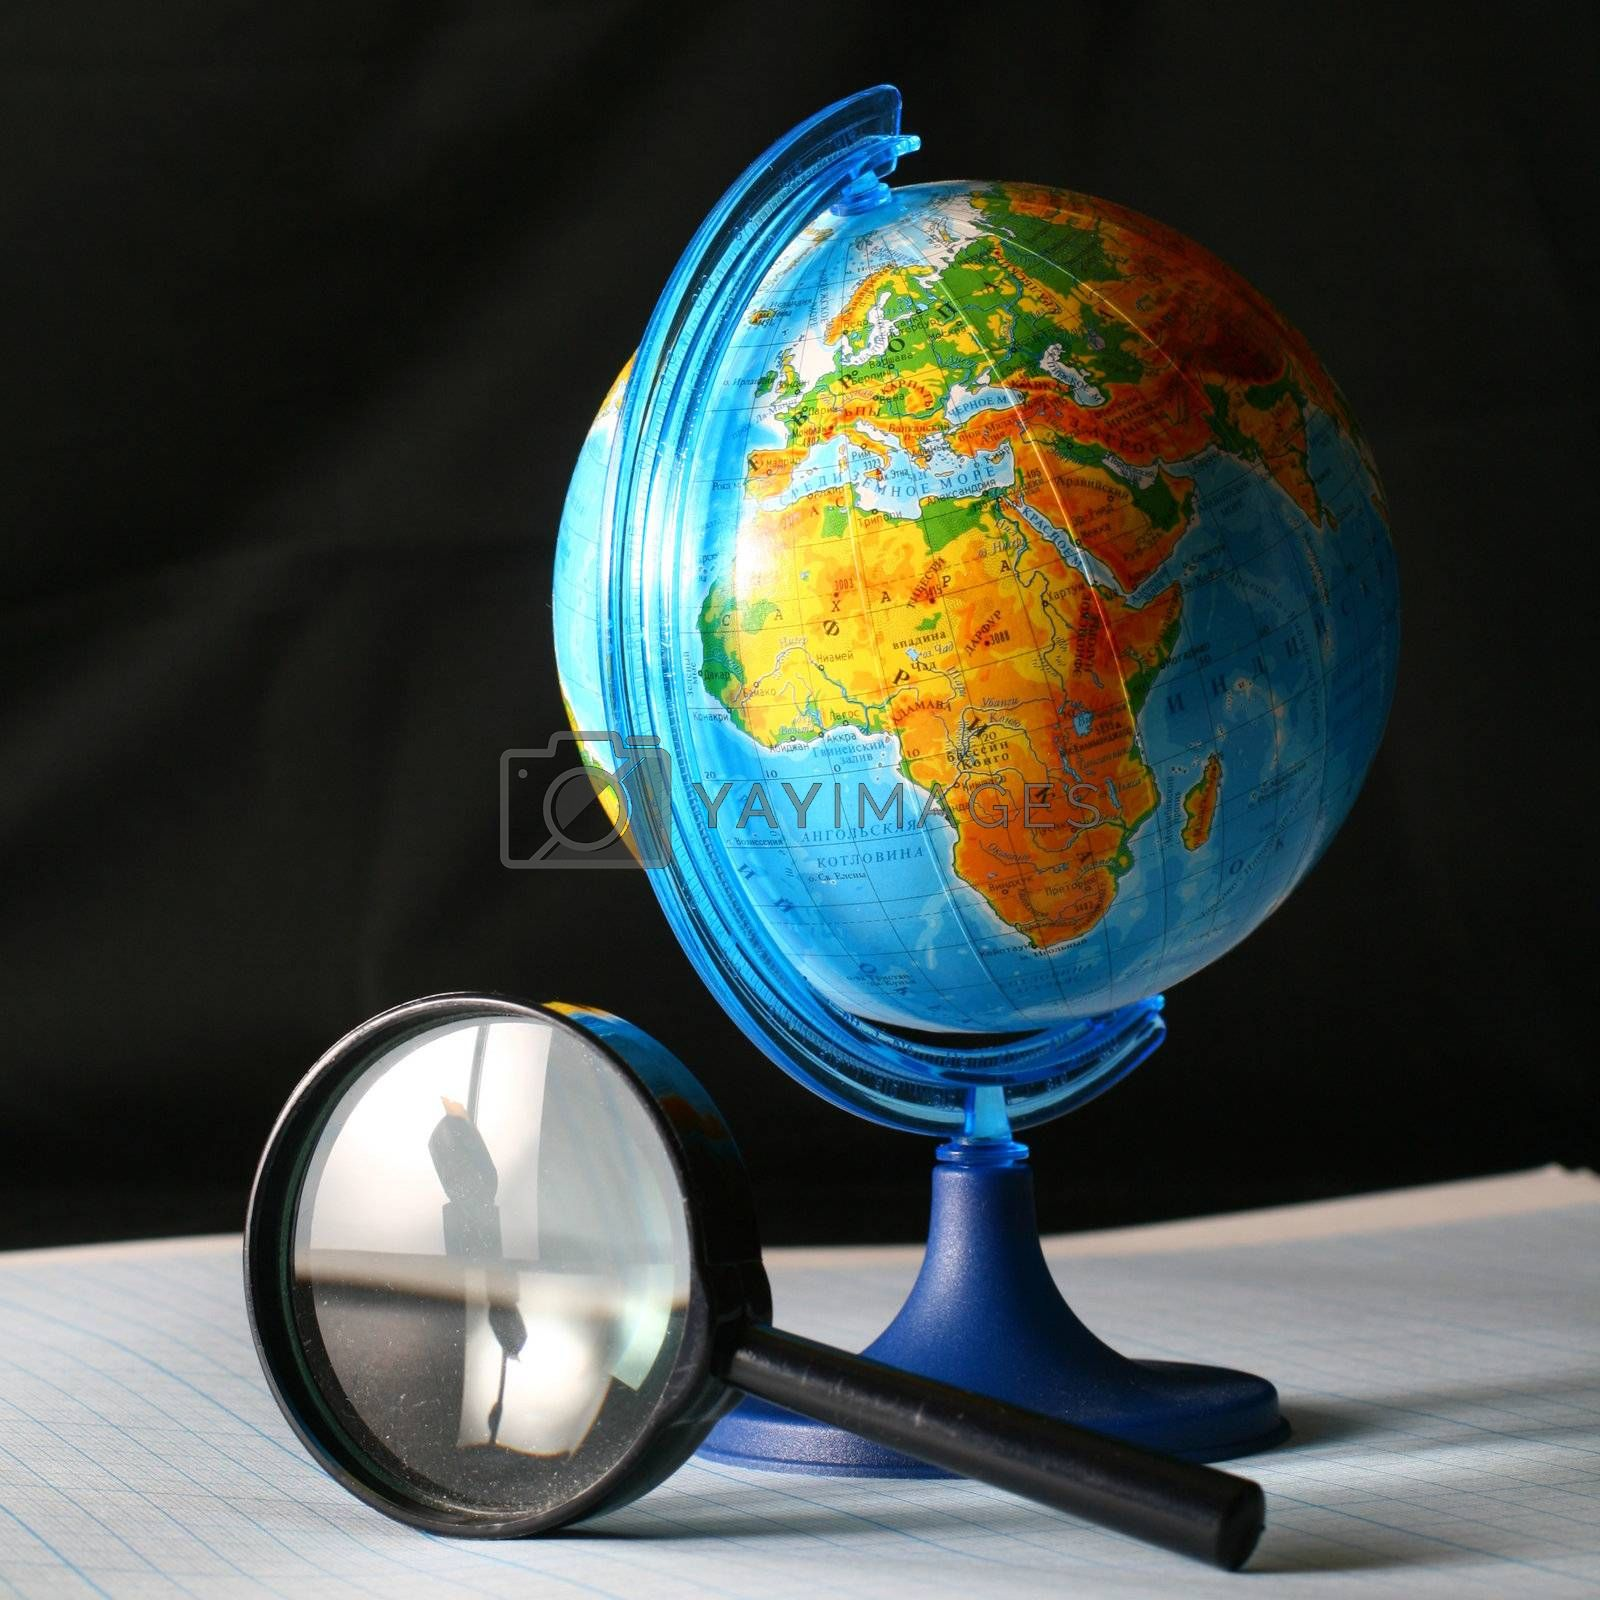 earth globe and magnifier in dark